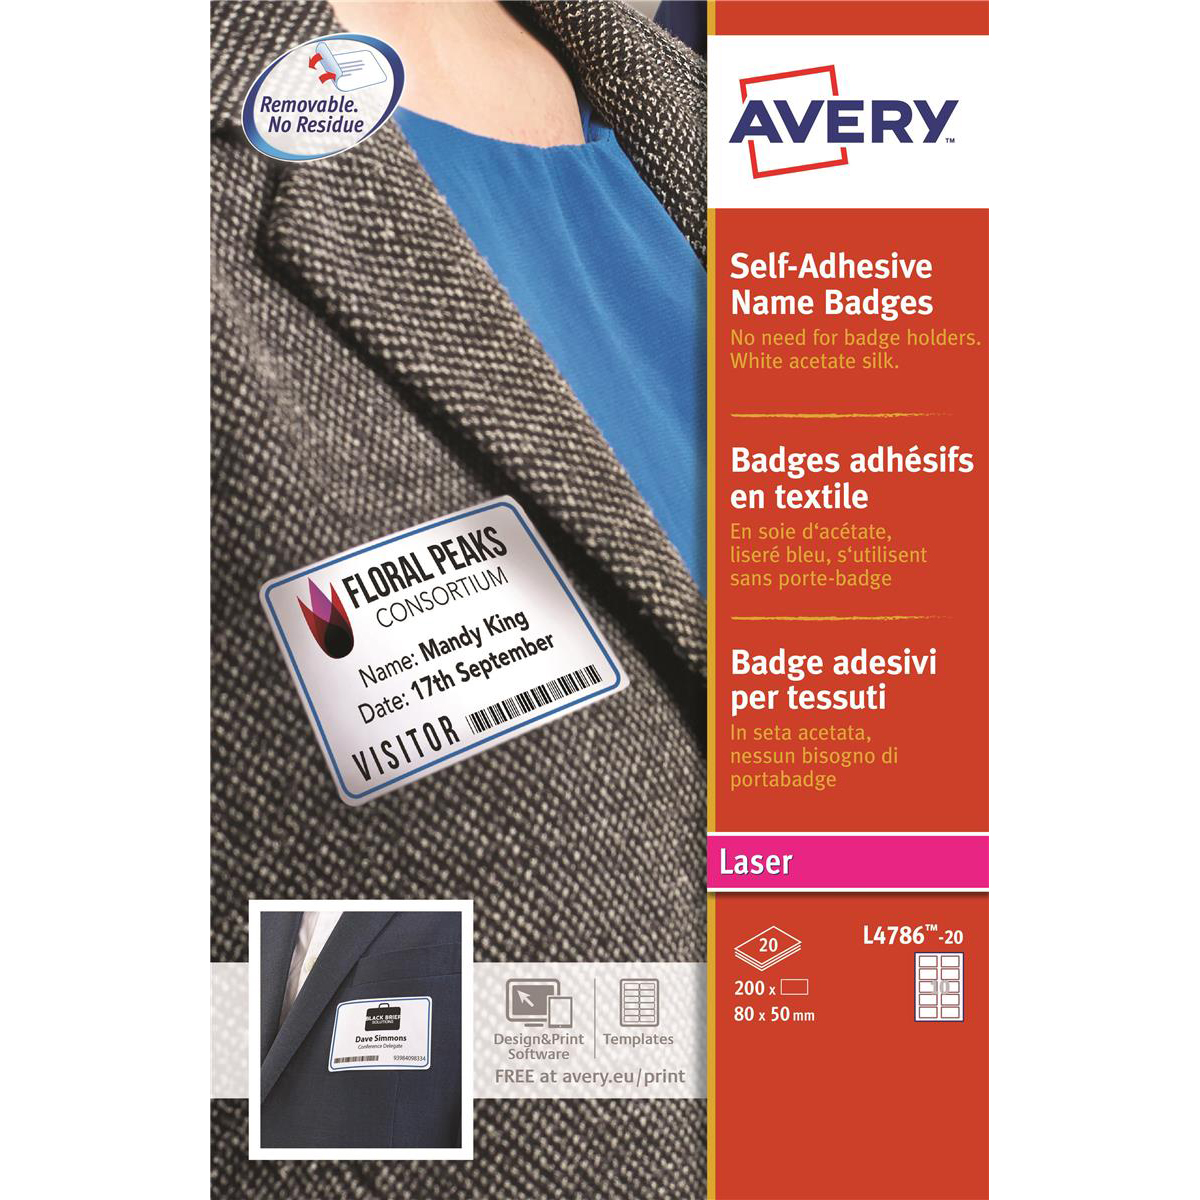 avery name badge labels laser self adhesive 80x50mm red border ref